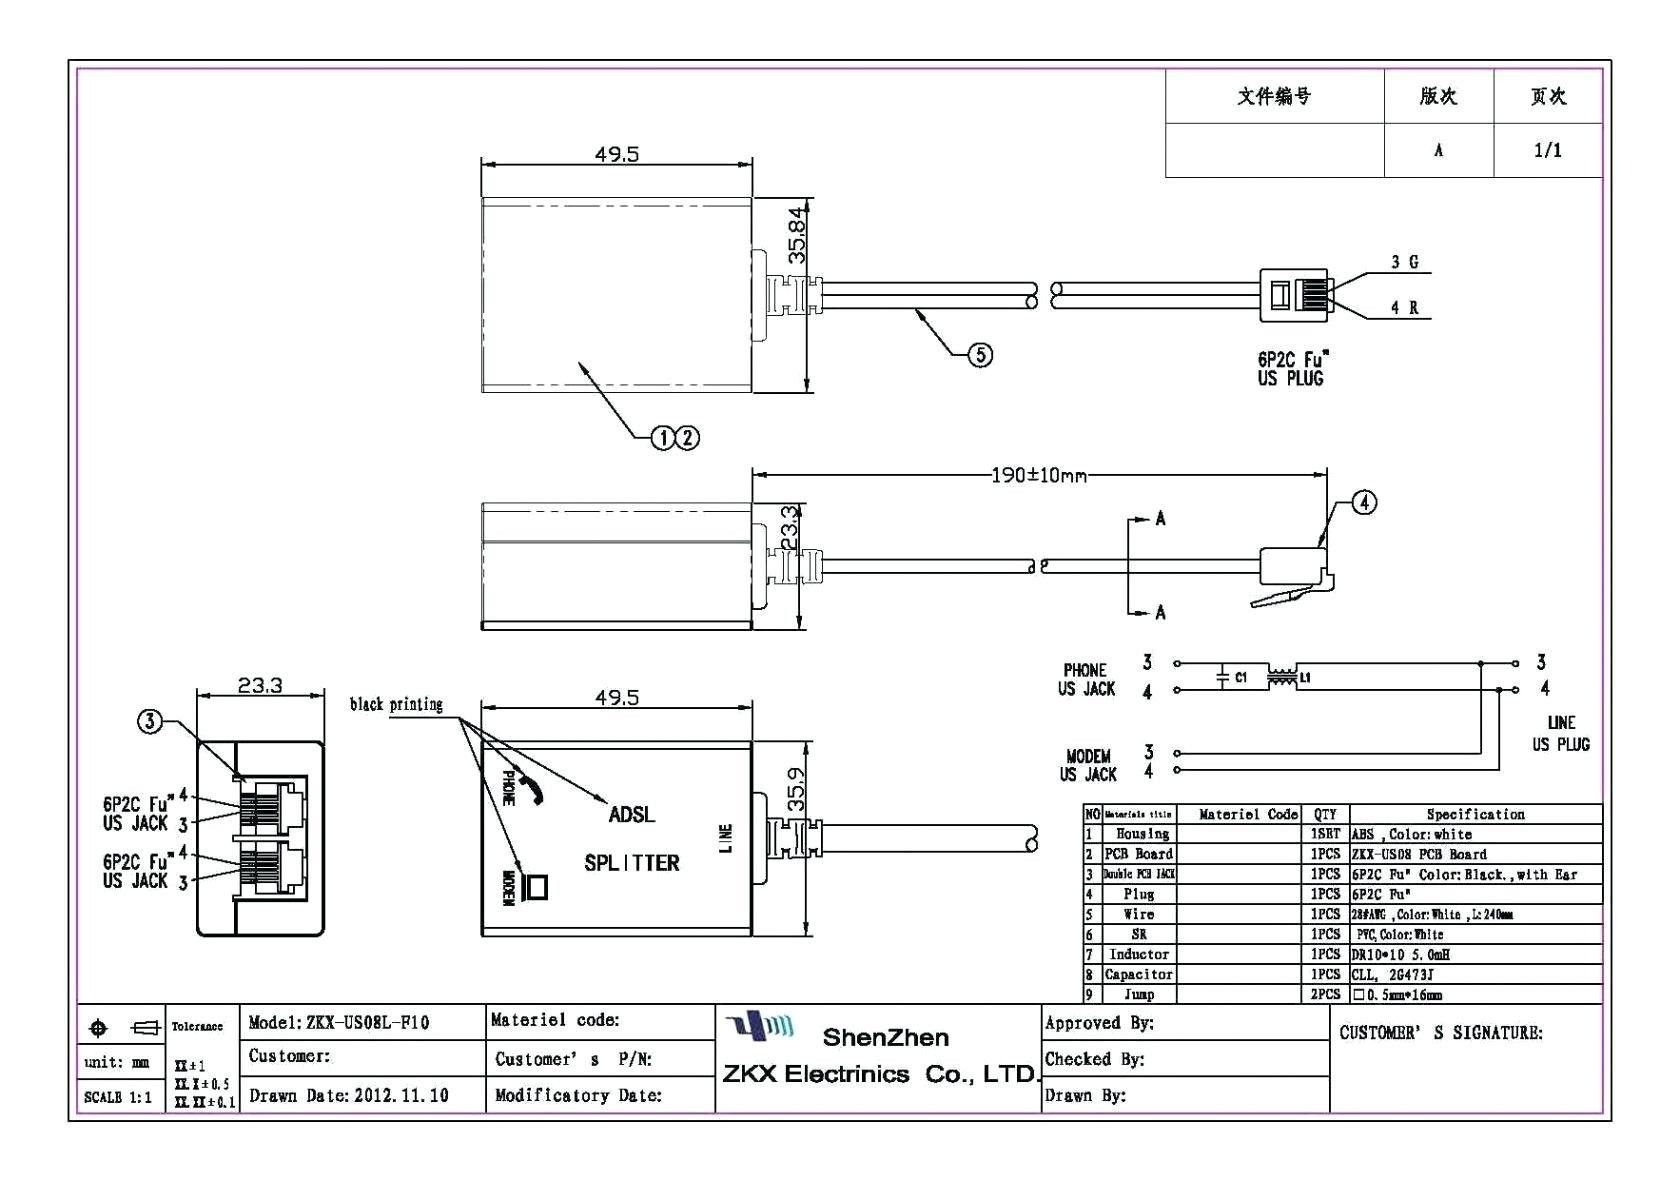 New Wiring Diagram For Home Phone Jack Diagram Diagramsample Diagramtemplate Wiringdiagram Diagramchart Worksheet Works Diagram Phone Jack Diagram Chart